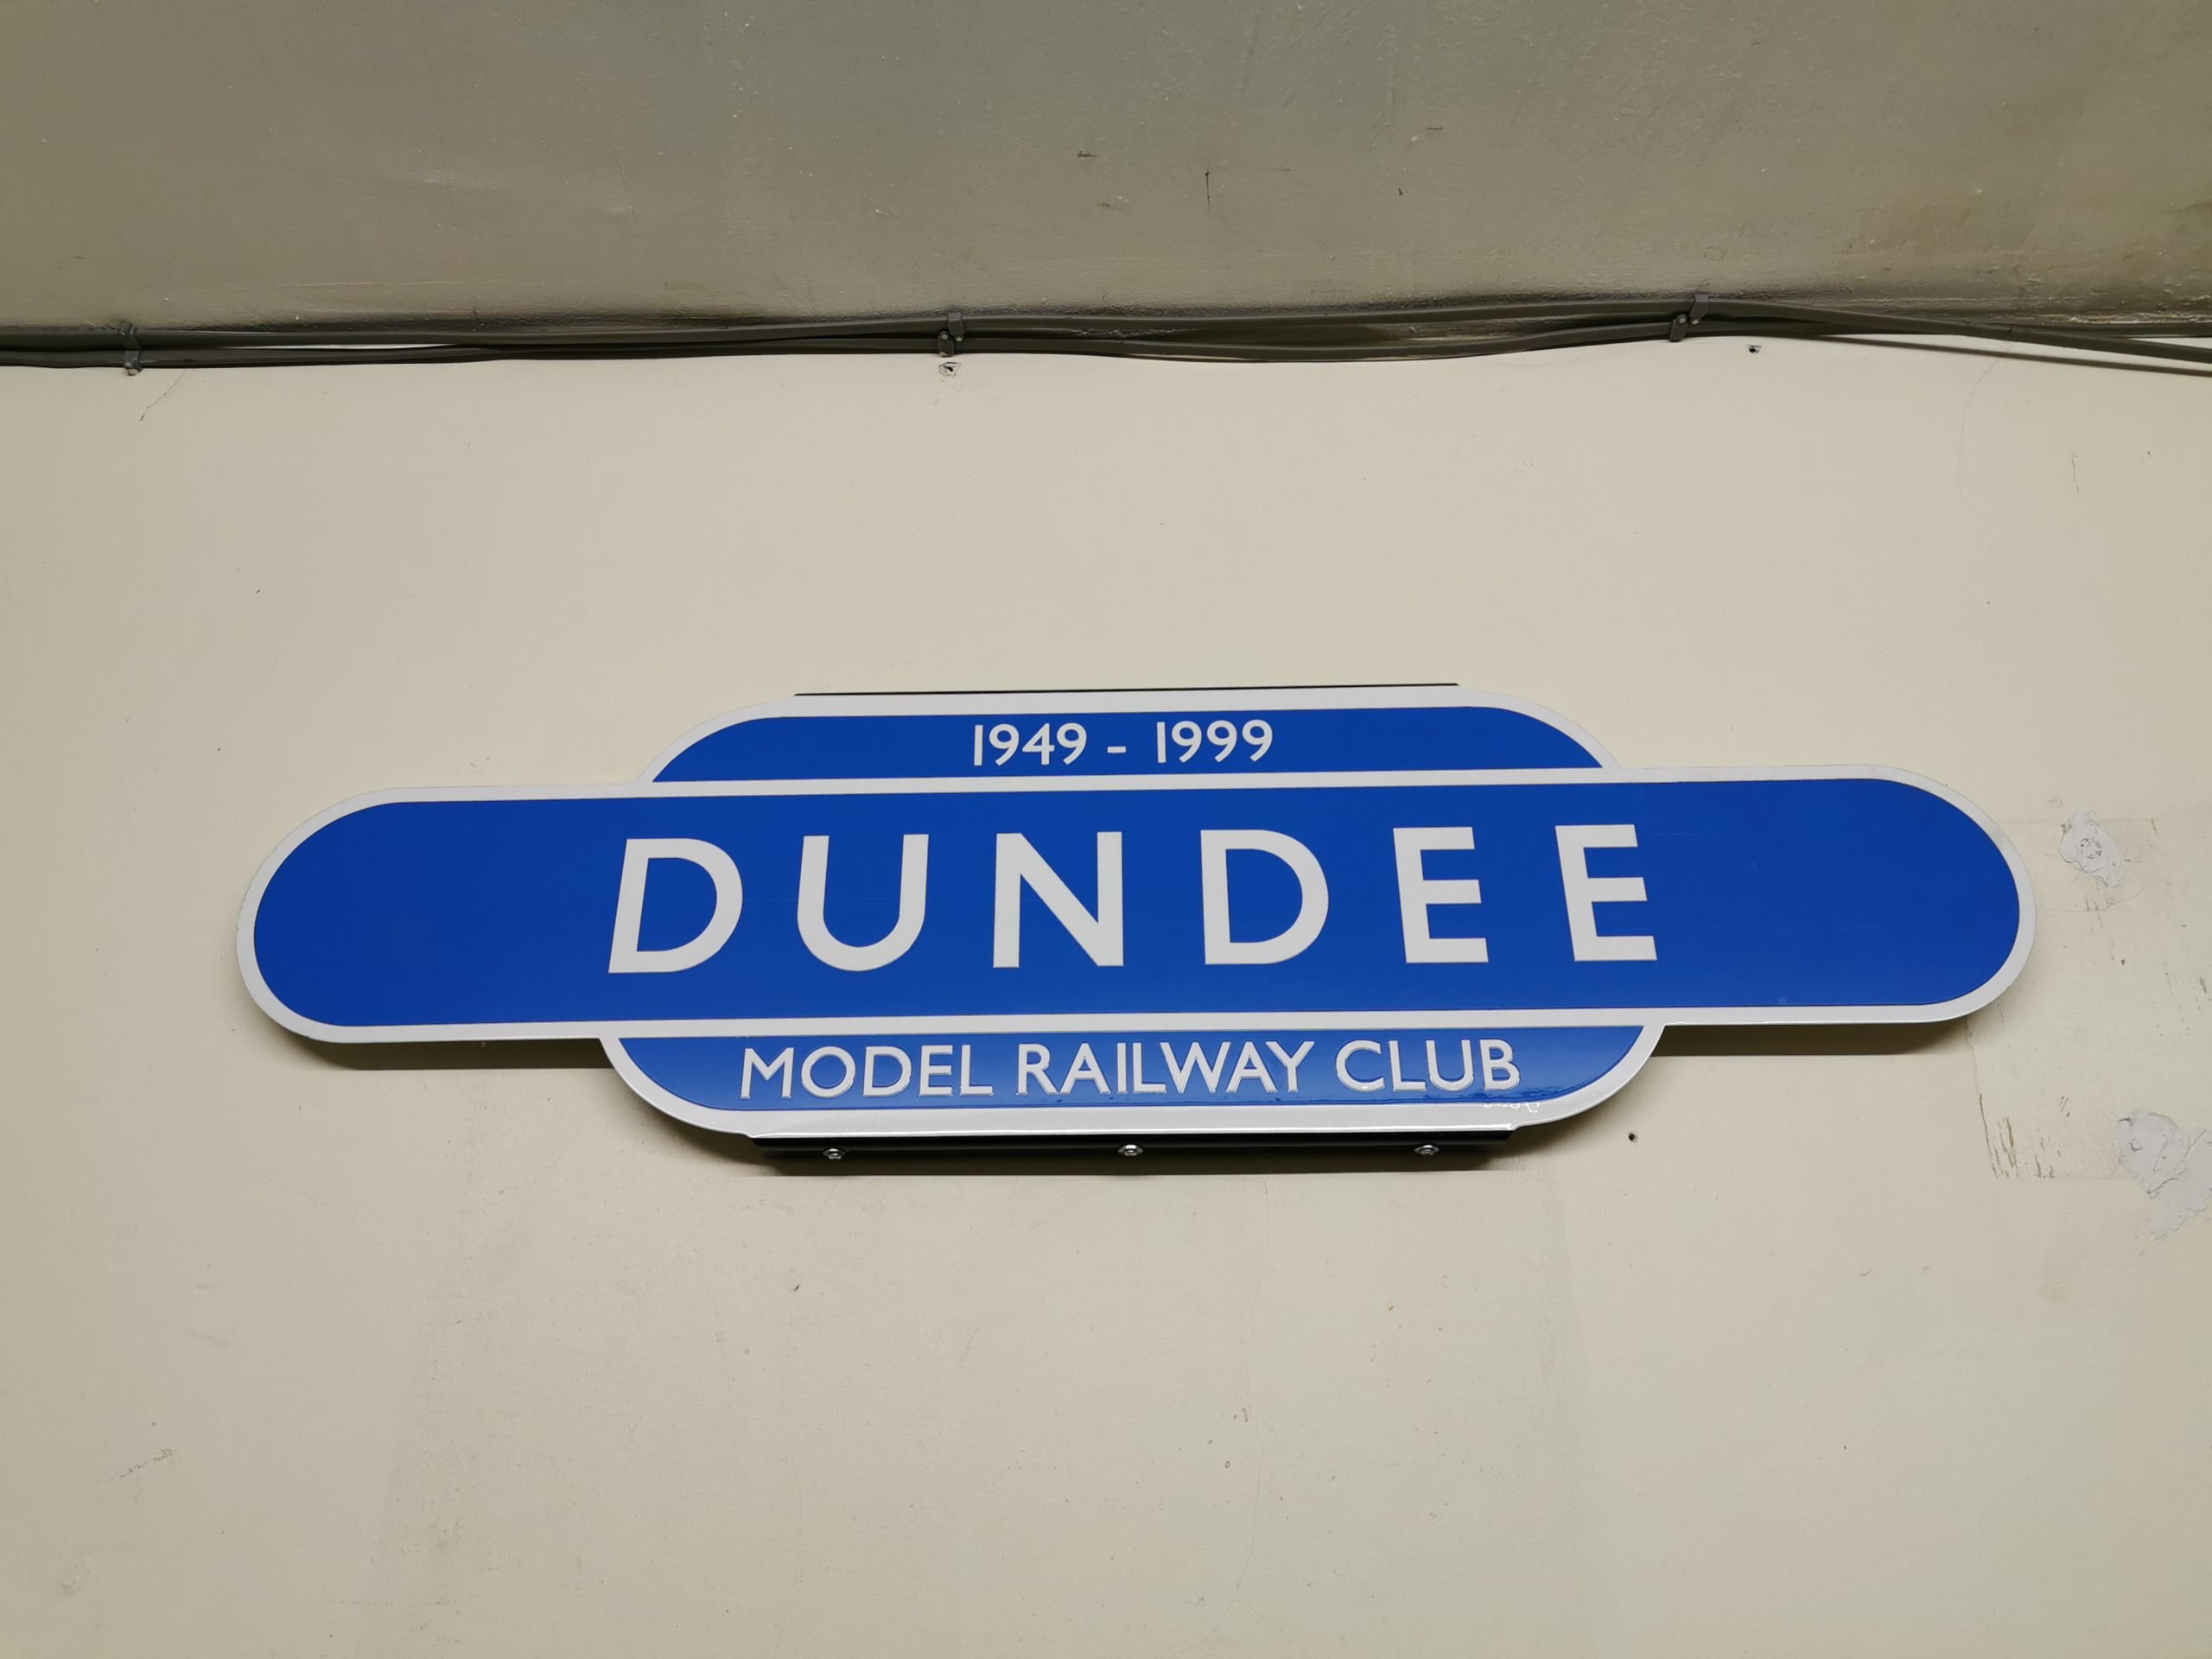 Dundee Model Railway Club Logo